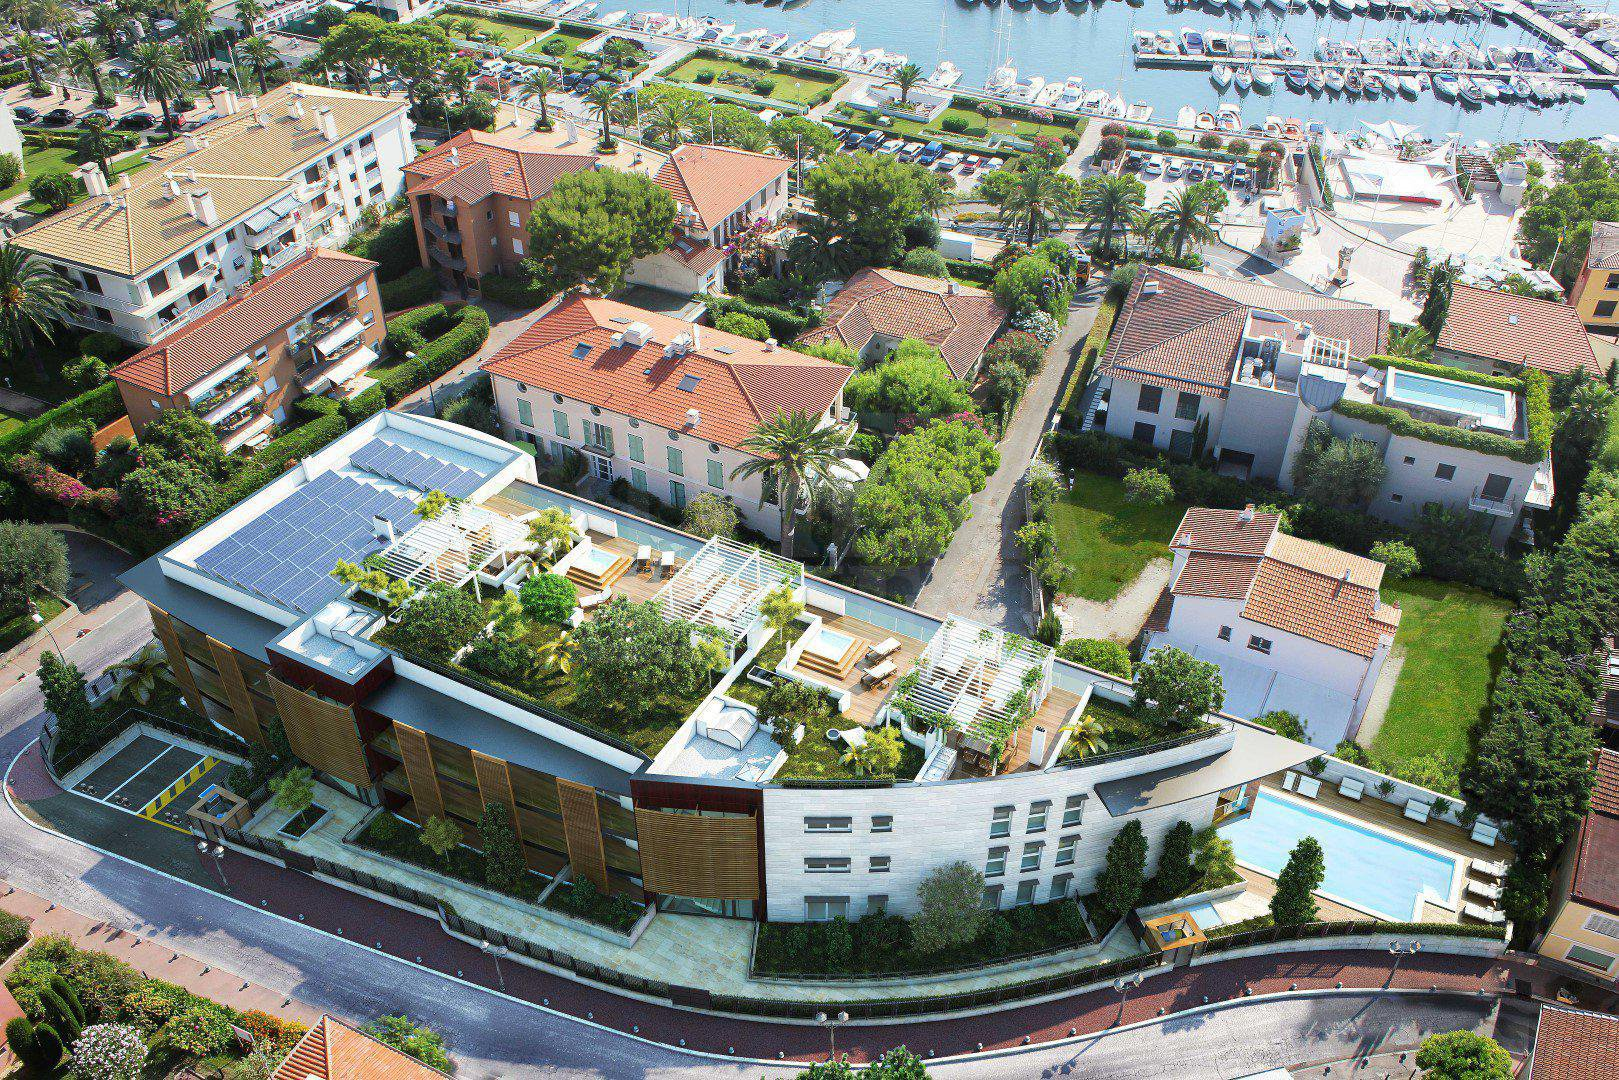 At Saint-Jan-Cap-Ferrat, a new outstanding and luxurious real estate development